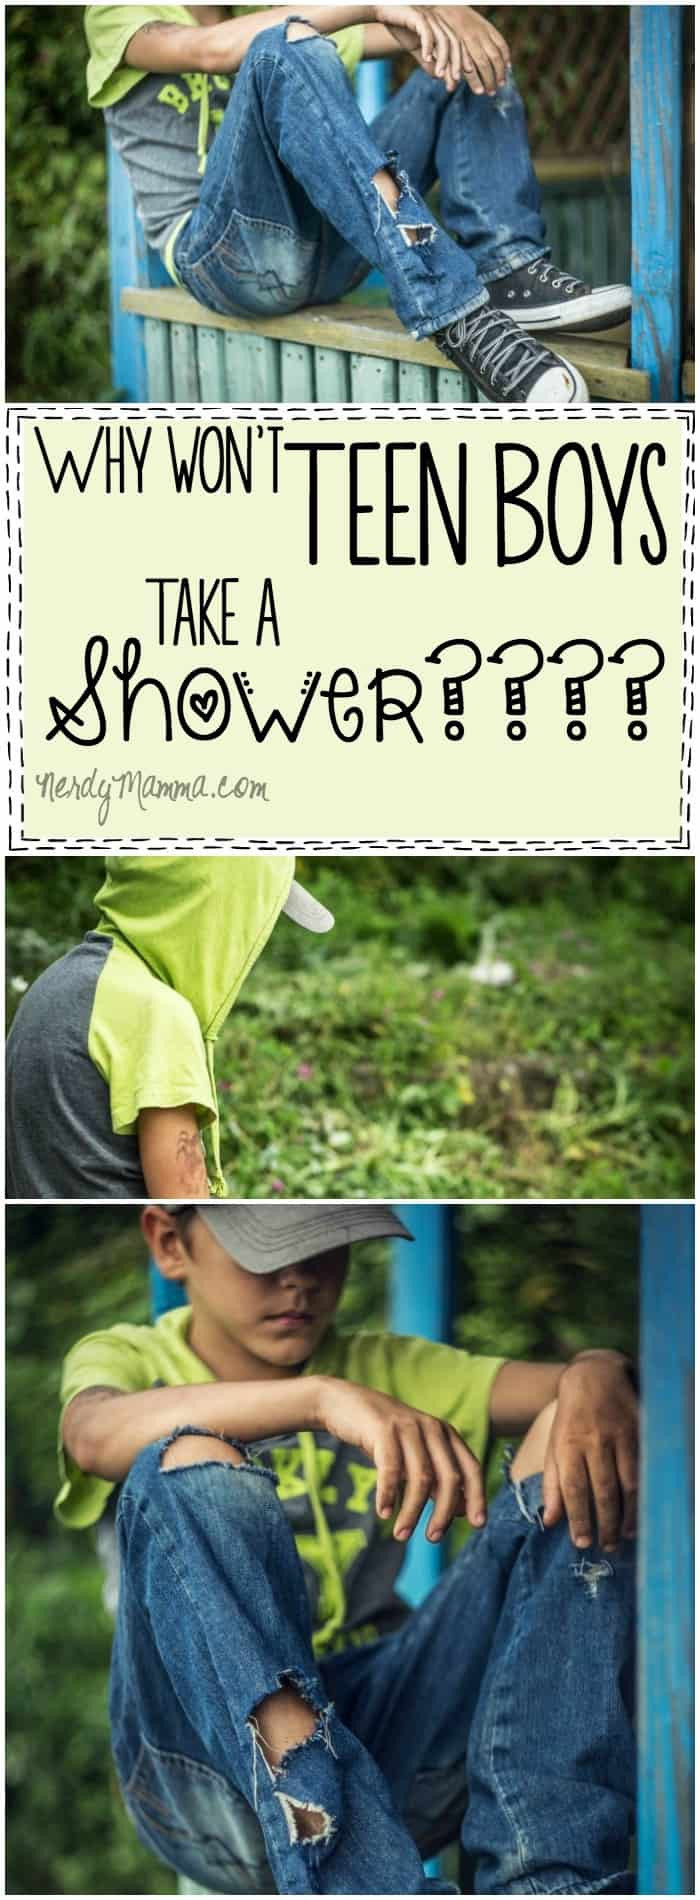 Oh, this mom. This mom is so funny. Her thoughts on why teen boys don't want to shower is SO FUNNY. I laughed so hard.